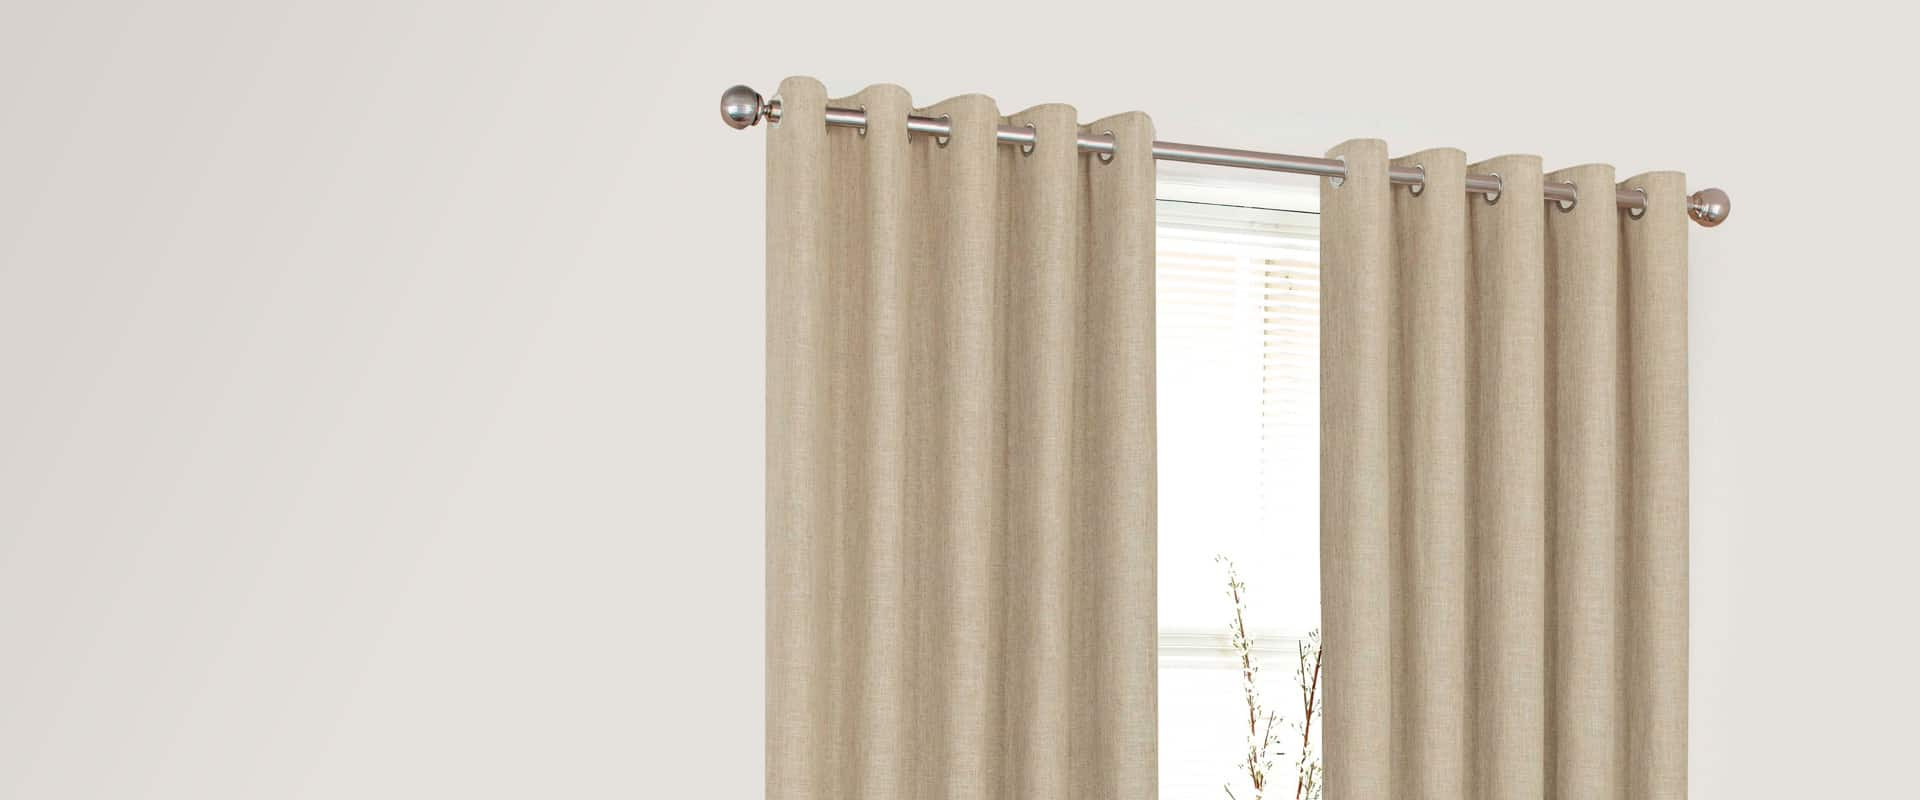 Best Blackout Curtains 2019 – Ultimate Buyer's Guide and Reviews